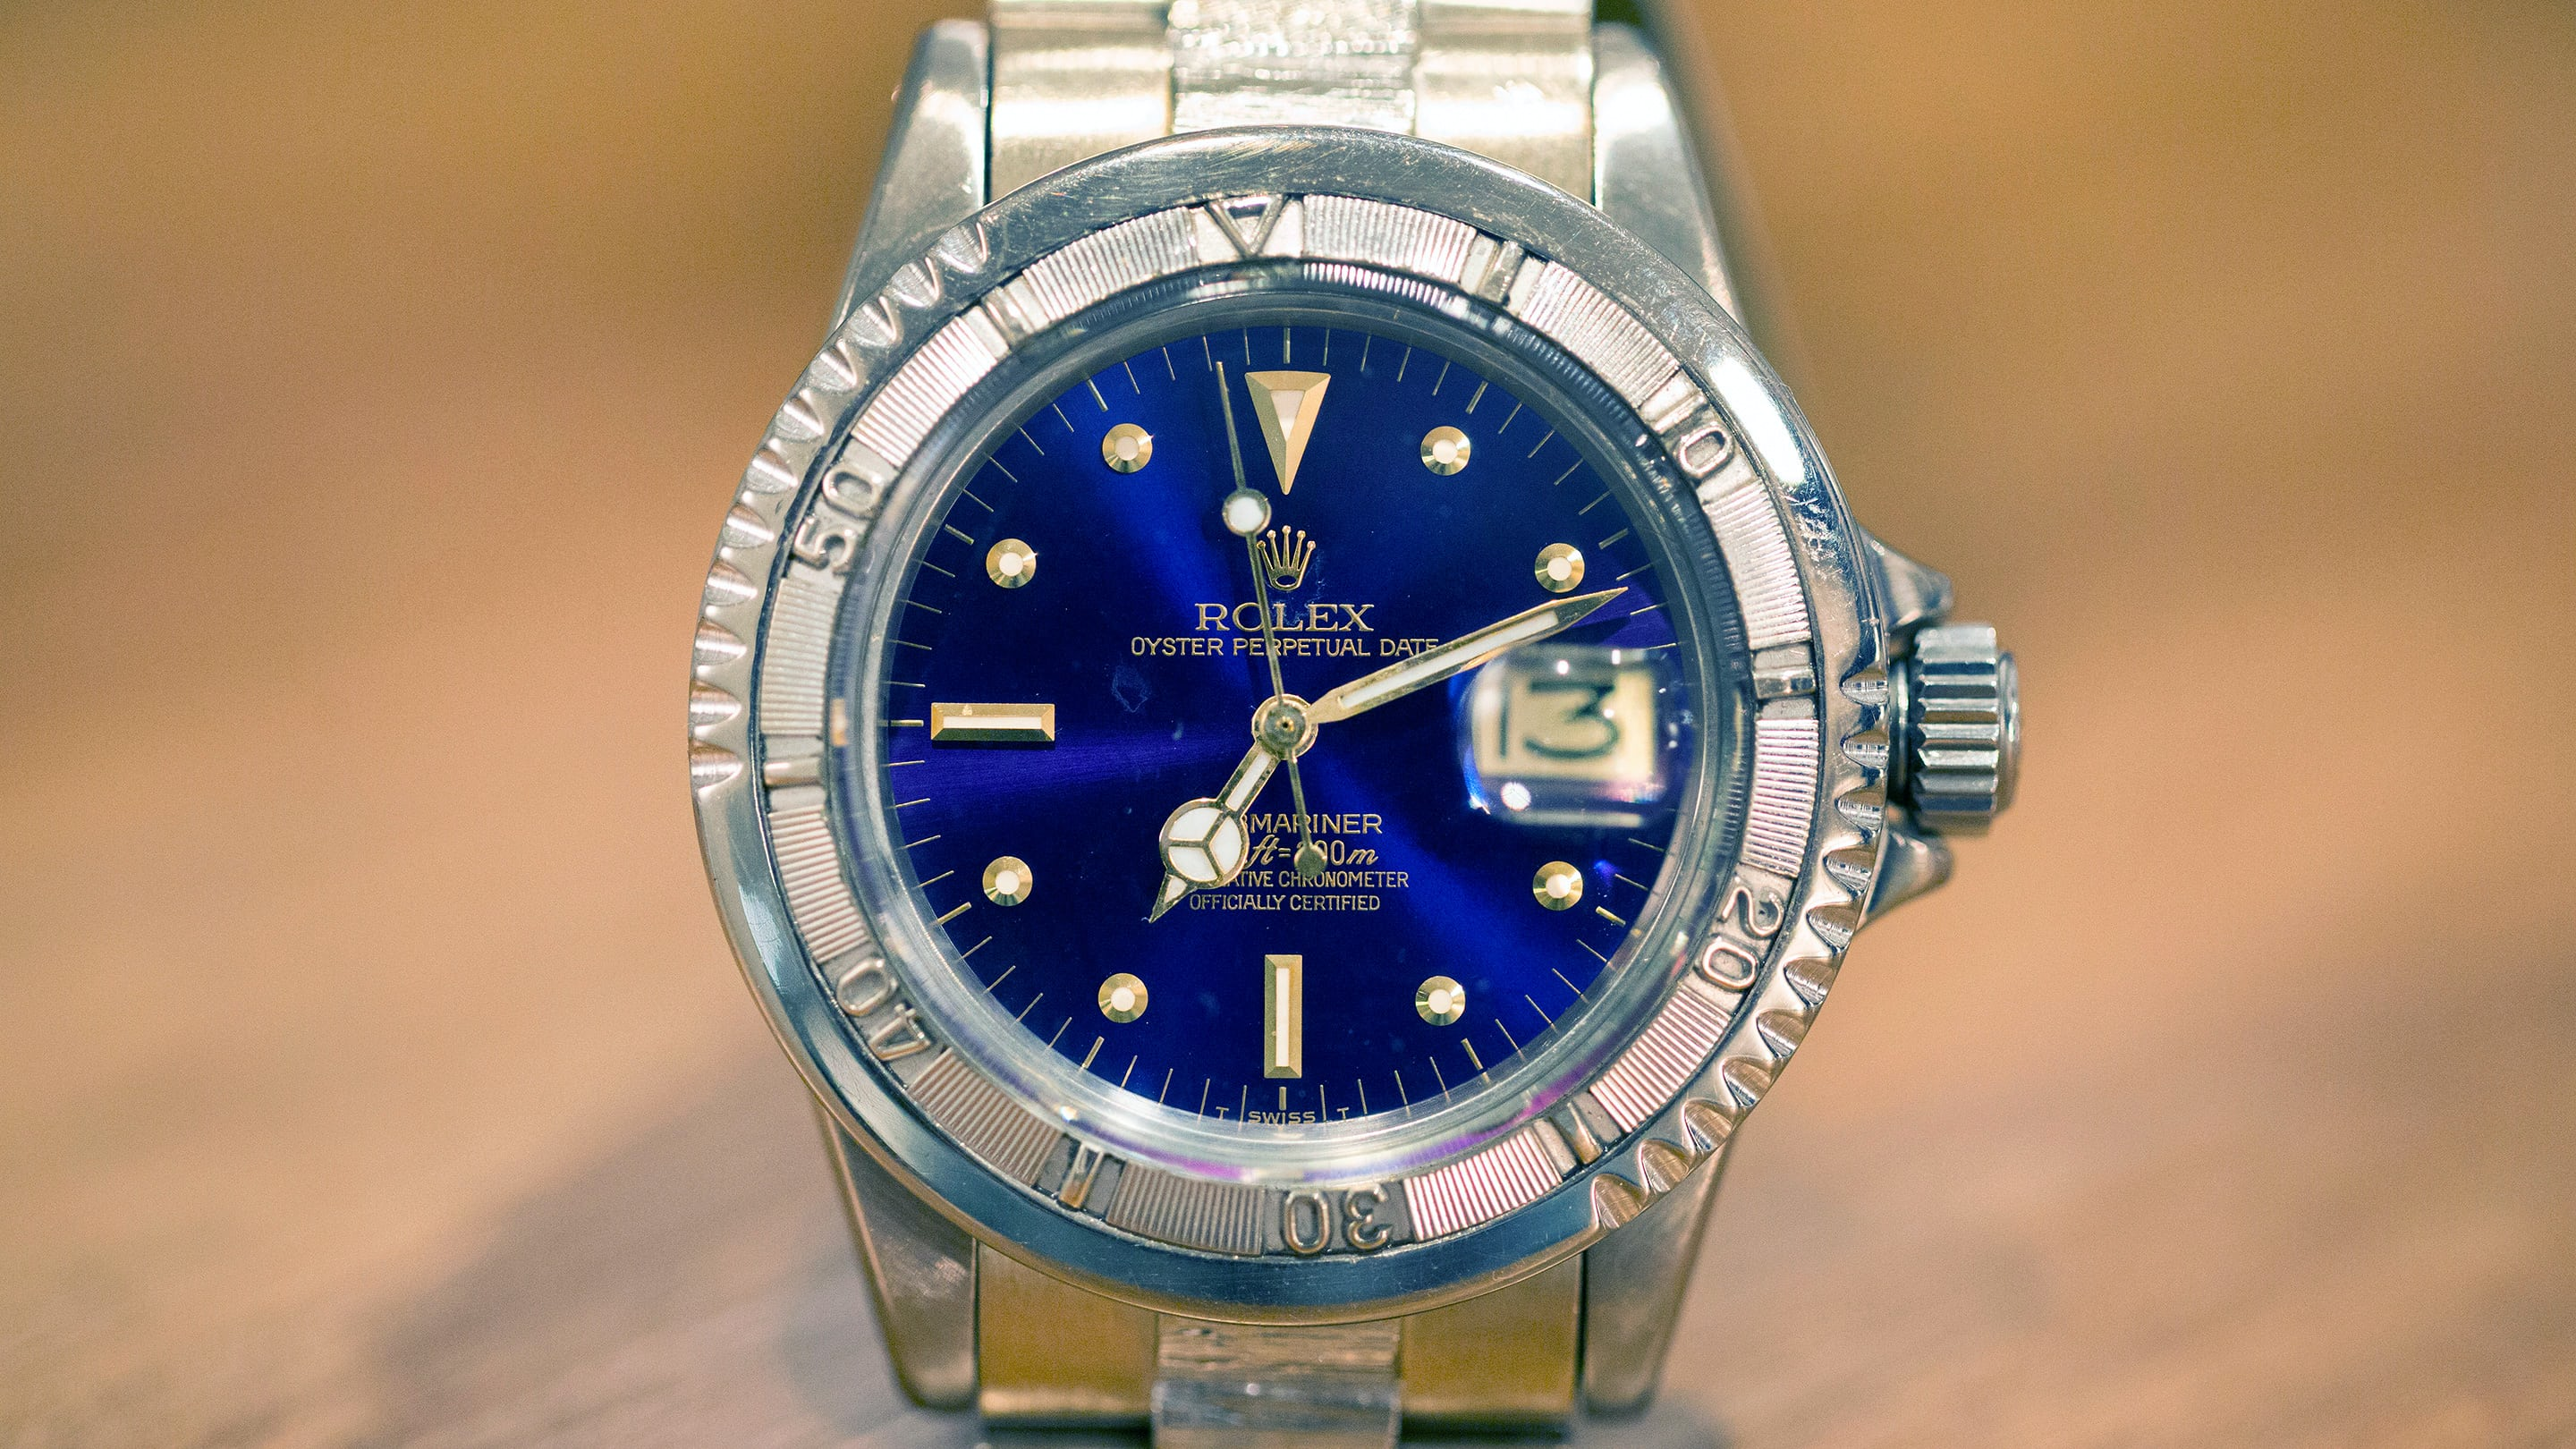 7234b137c12 Auction Report  This Very Strange White Gold Prototype Is Now The Most  Expensive Rolex Submariner In The World - HODINKEE